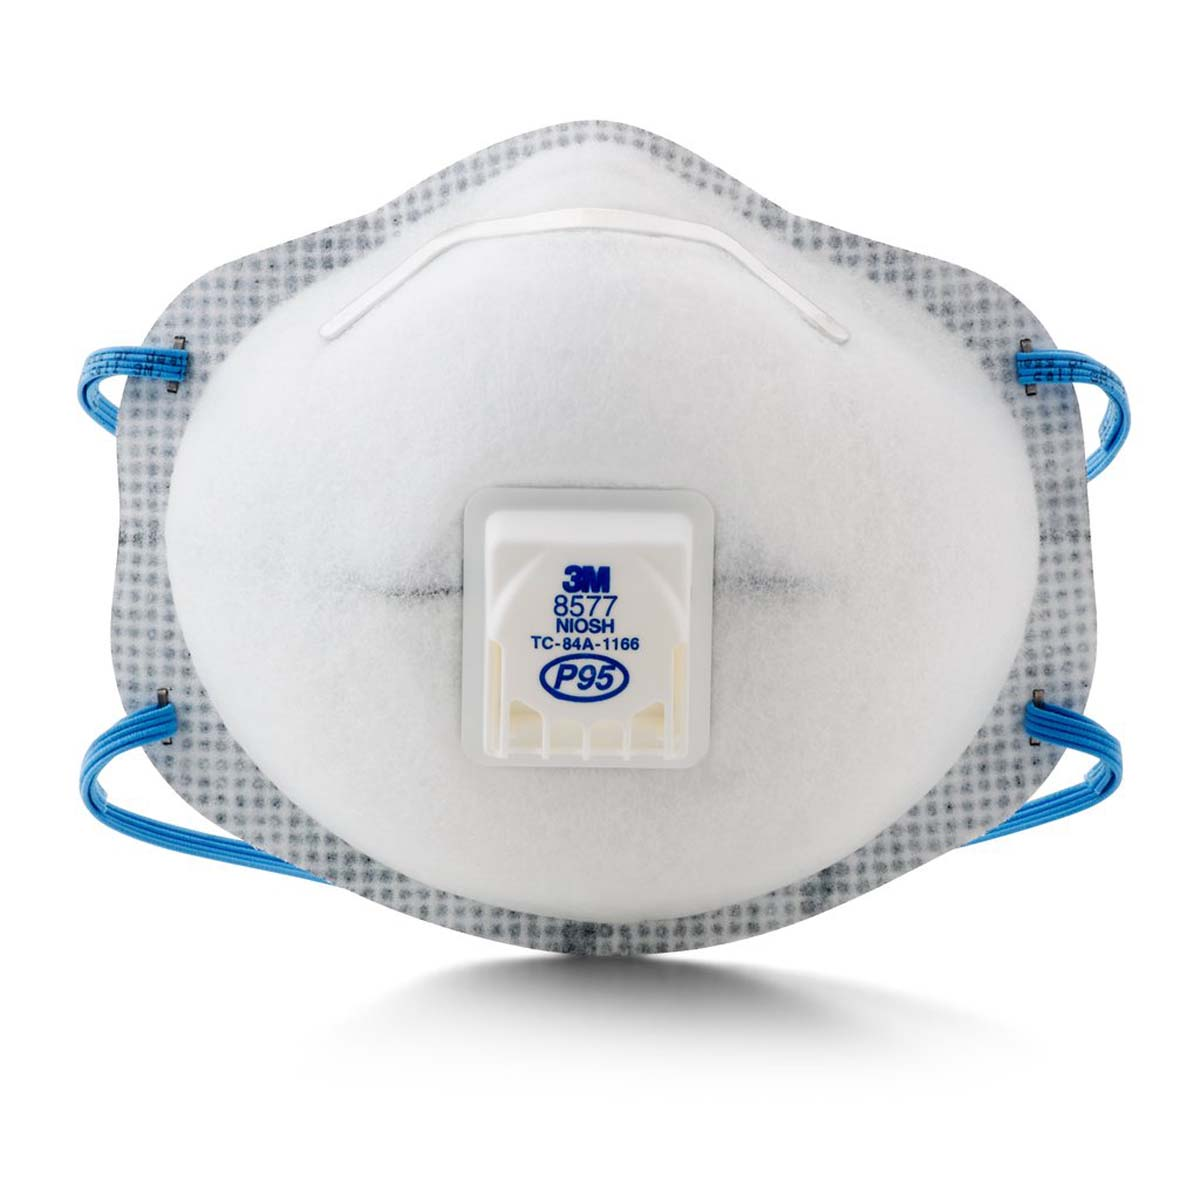 "3Mâ""¢ Particulate Respirator 8577, P95, with Nuisance Level Organic Vapor Relief"